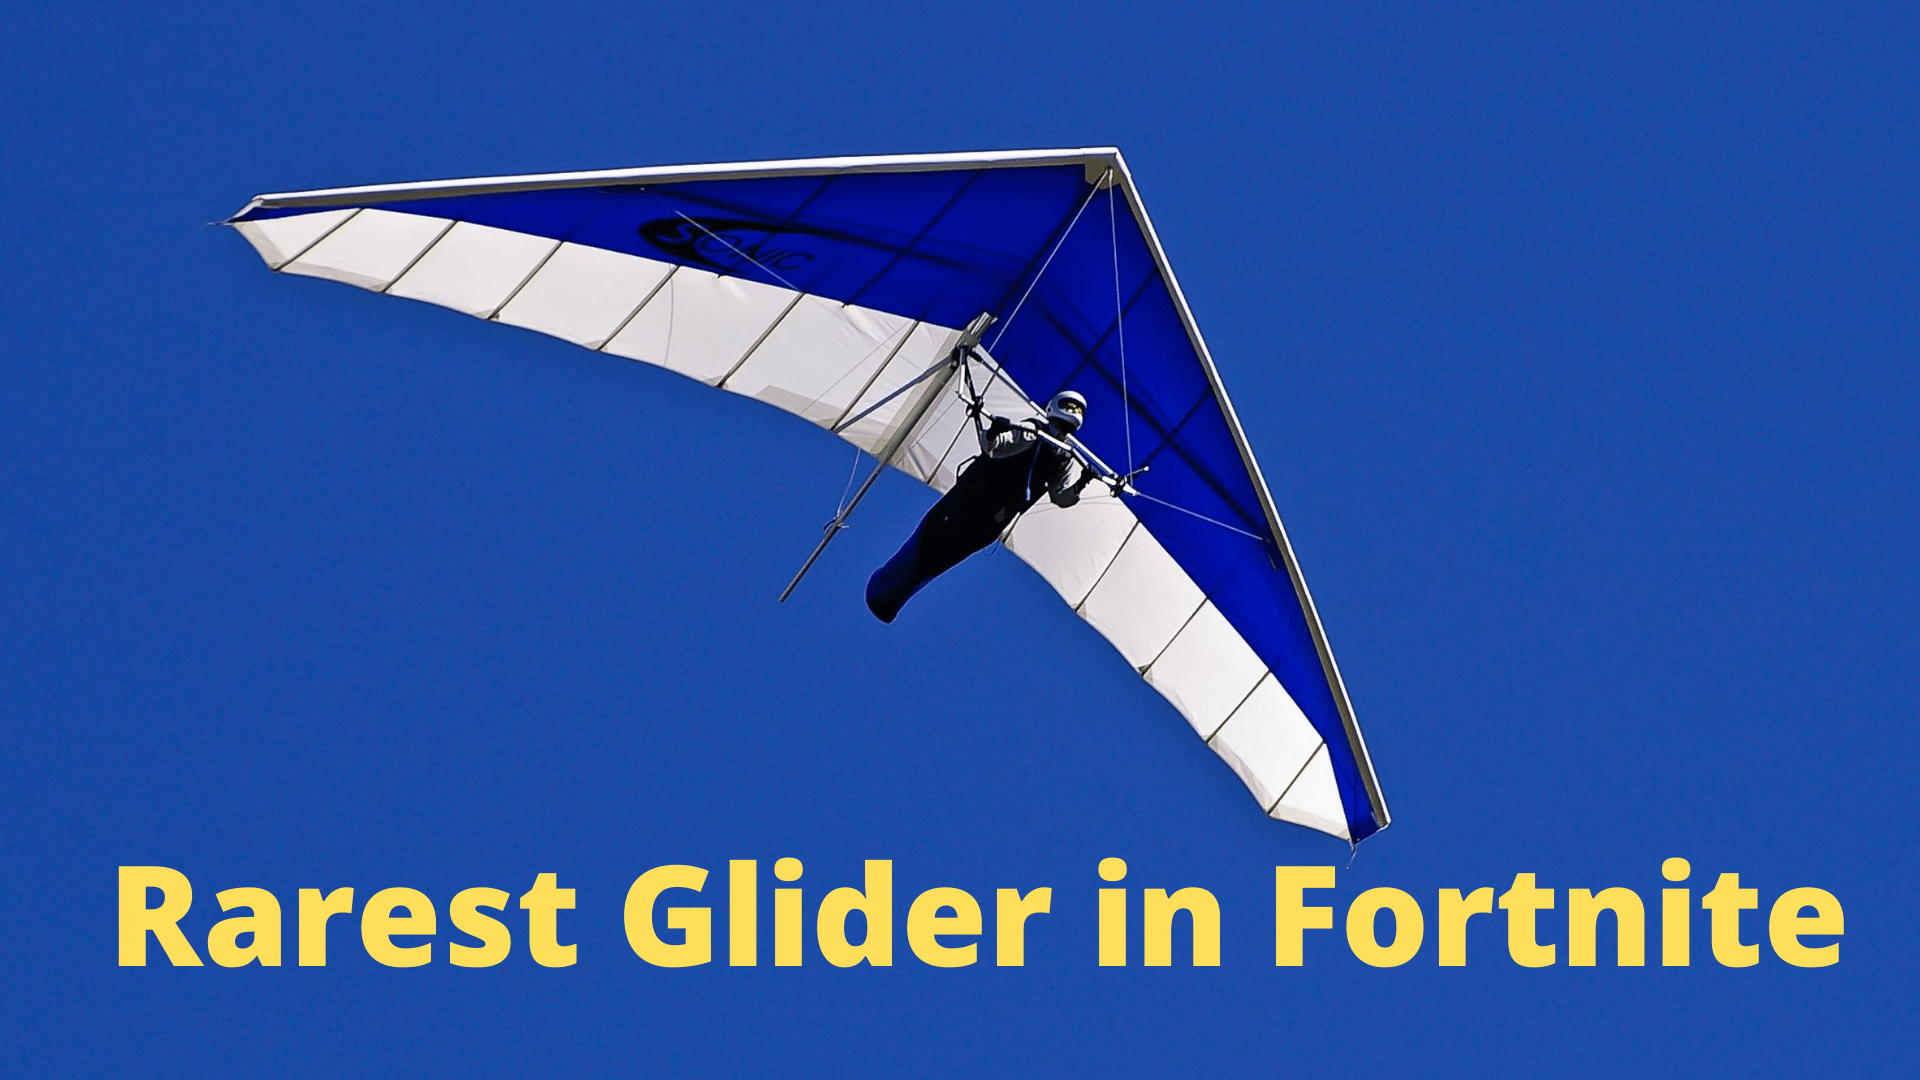 Rarest Glider in Fortnite